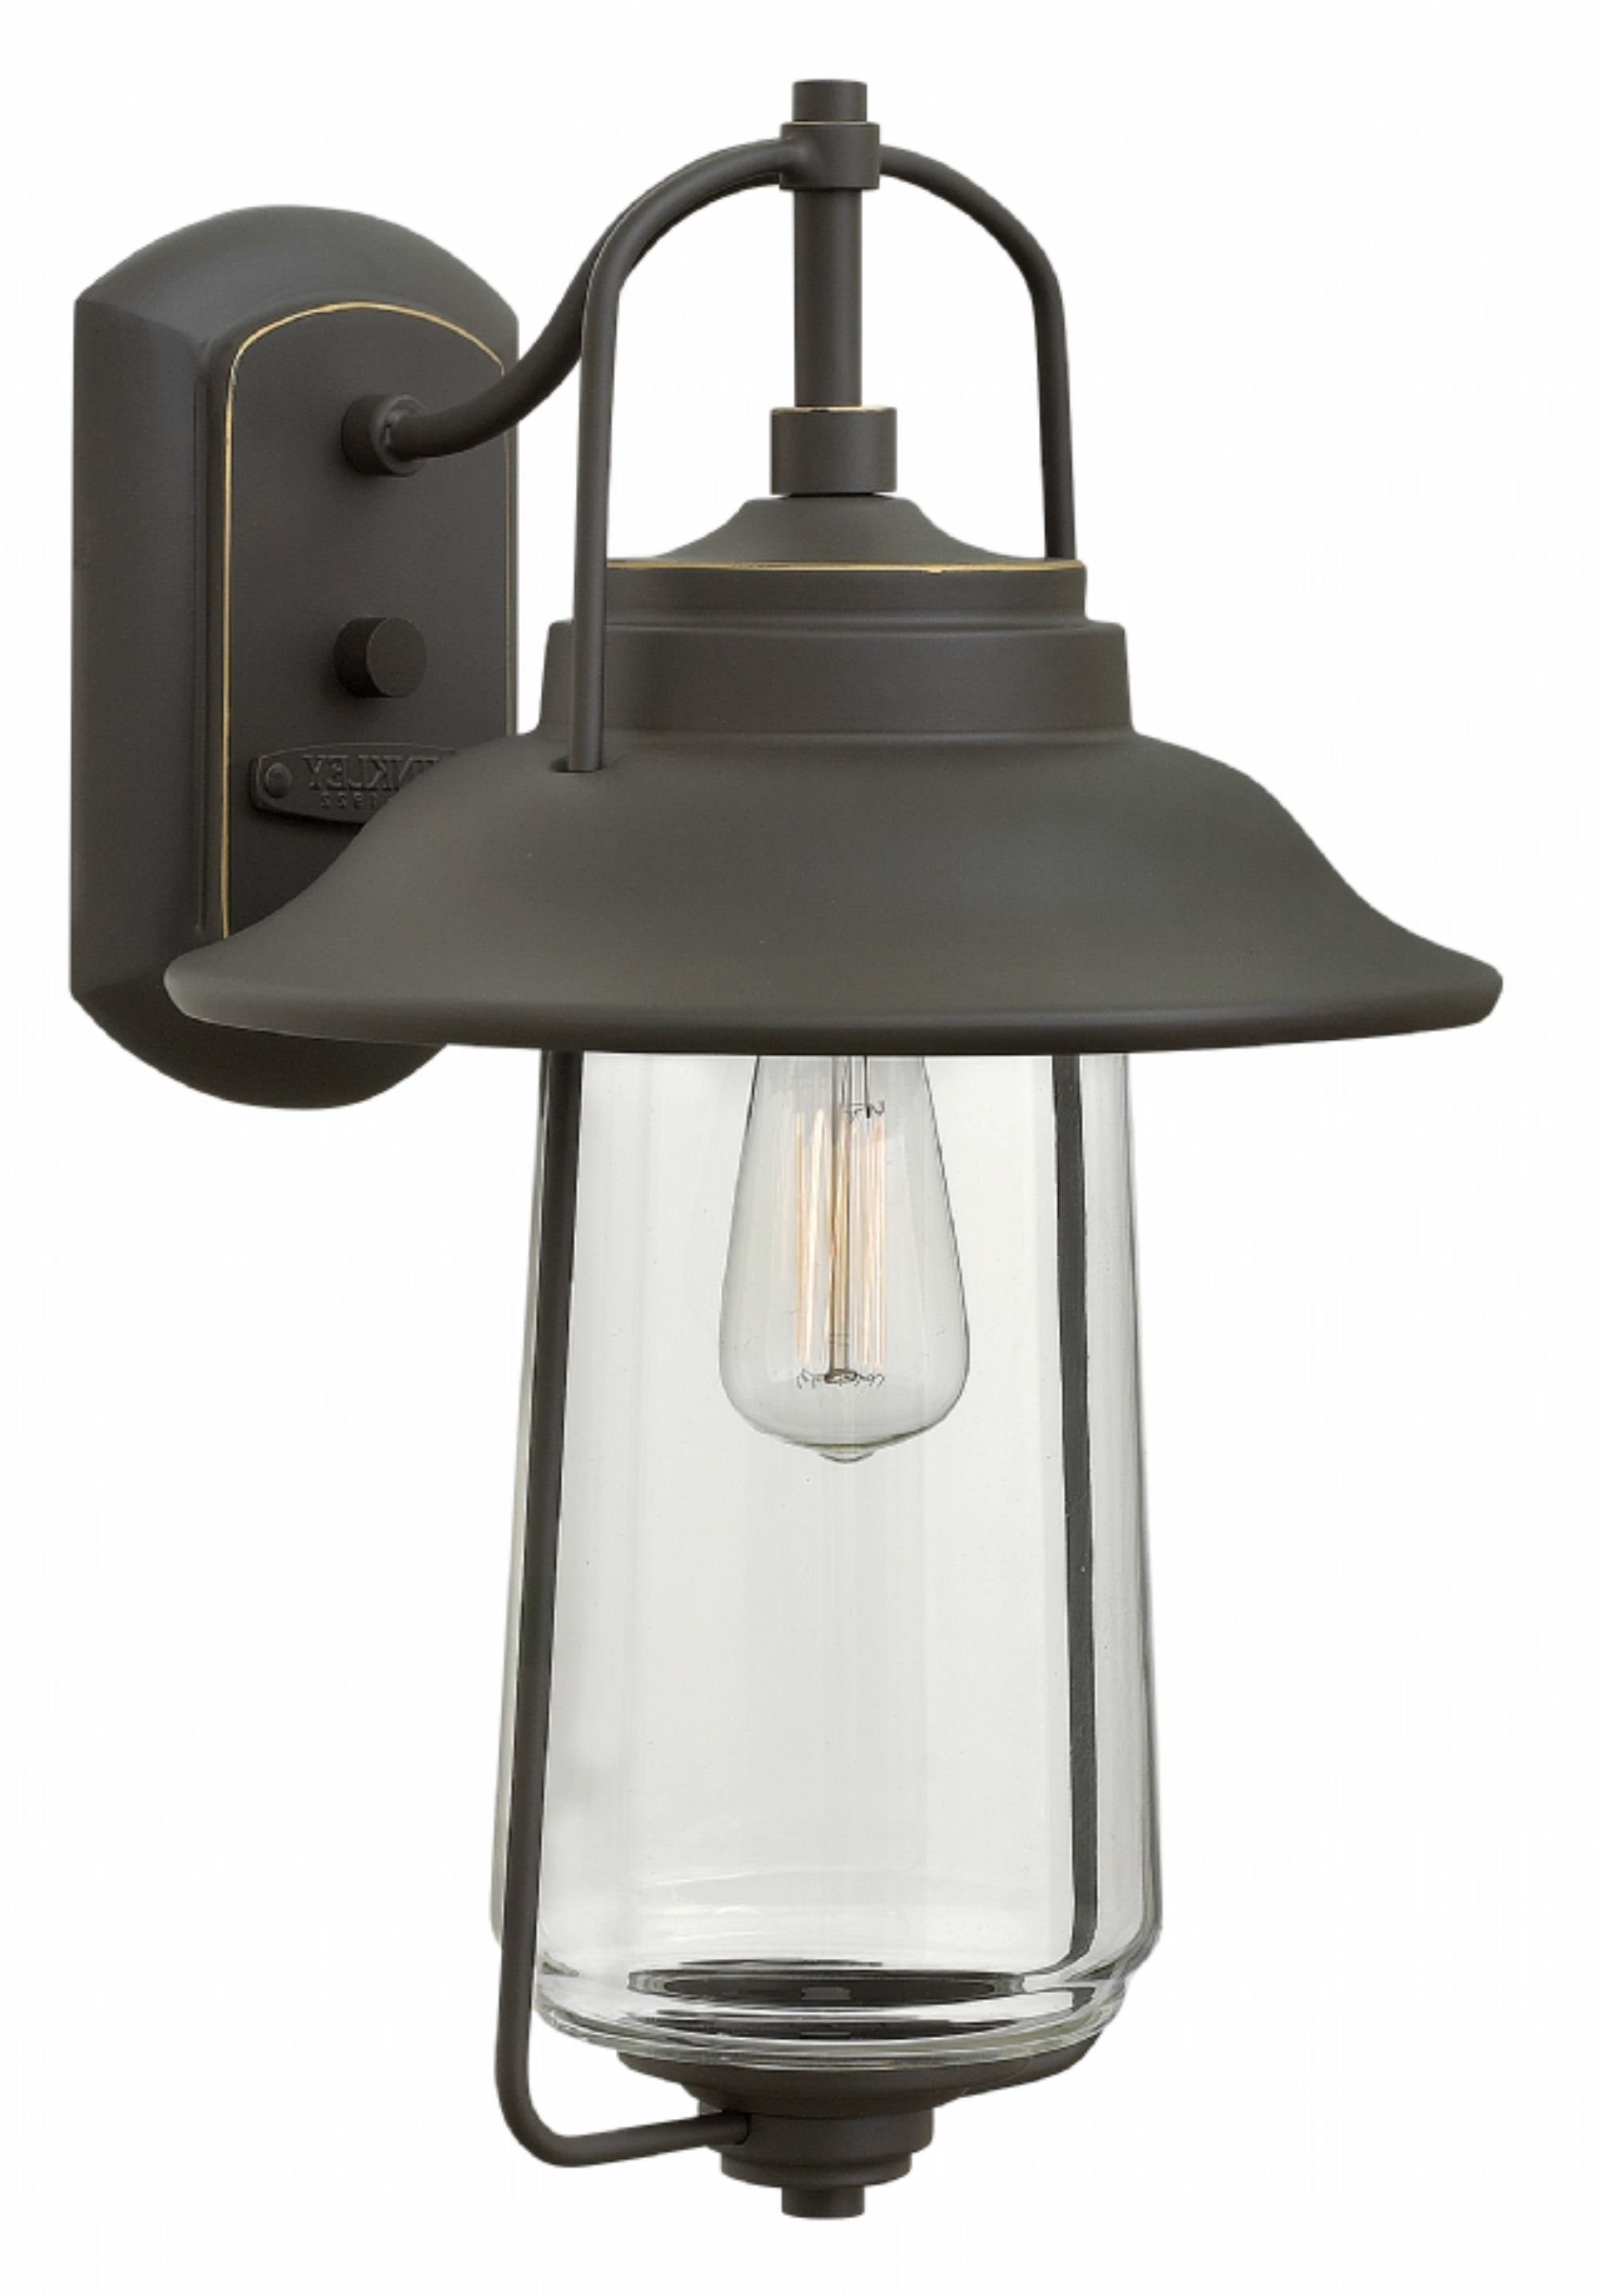 Pottery Barn Outdoor Wall Lighting Pertaining To Recent Lighting : Bel Air Lighting Farmhouse Light Outdoor Black Wall (View 14 of 20)